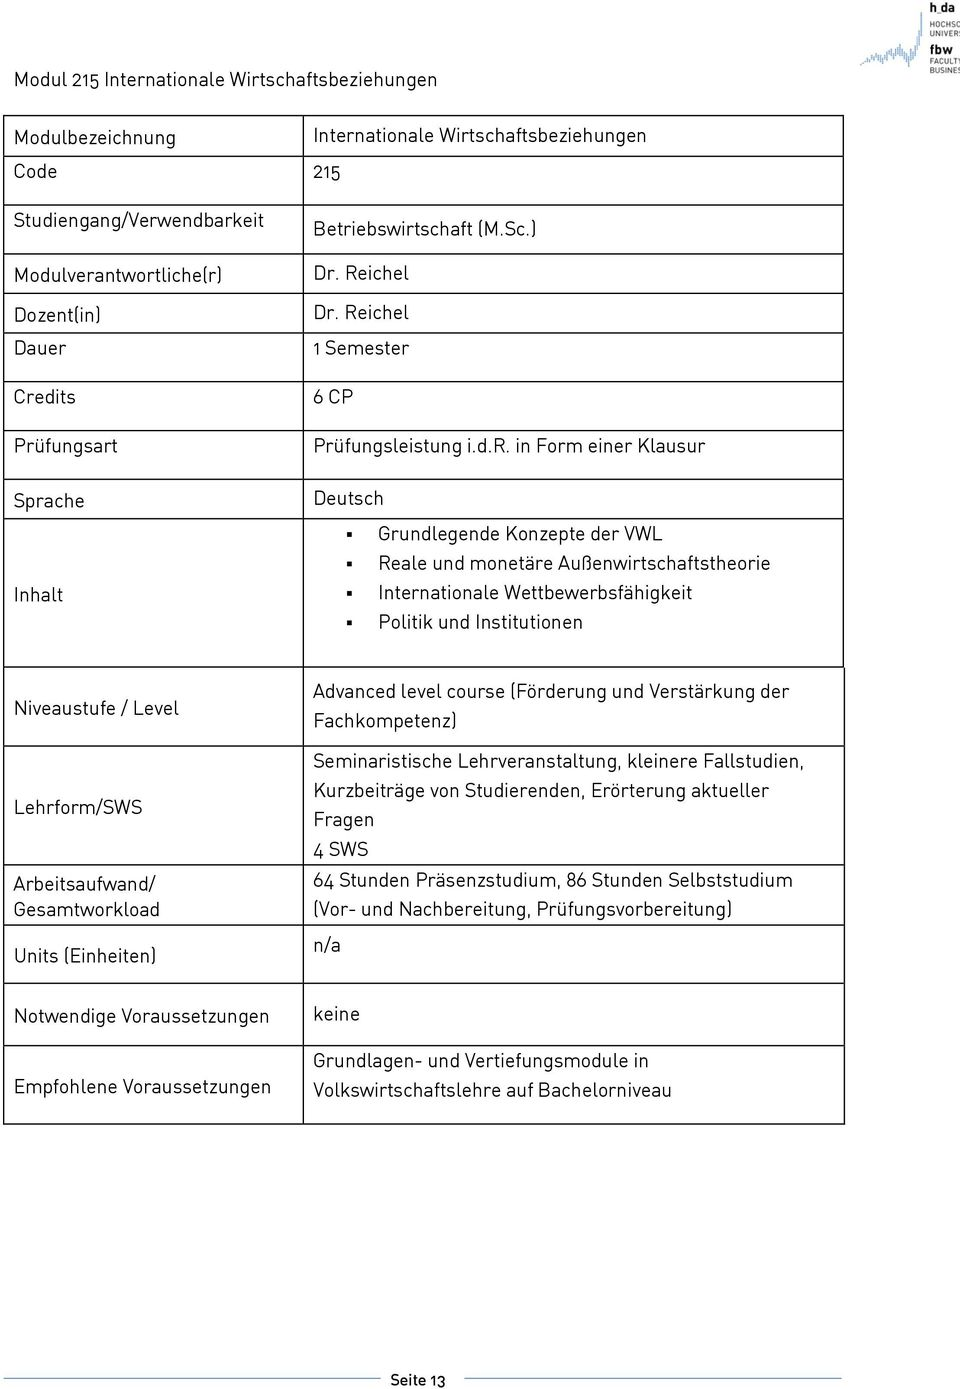 Außenwirtschaftstheorie Internationale Wettbewerbsfähigkeit Politik und Institutionen Niveaustufe / Level Lehrform/SWS Arbeitsaufwand/ Gesamtworkload Units (Einheiten) Advanced level course